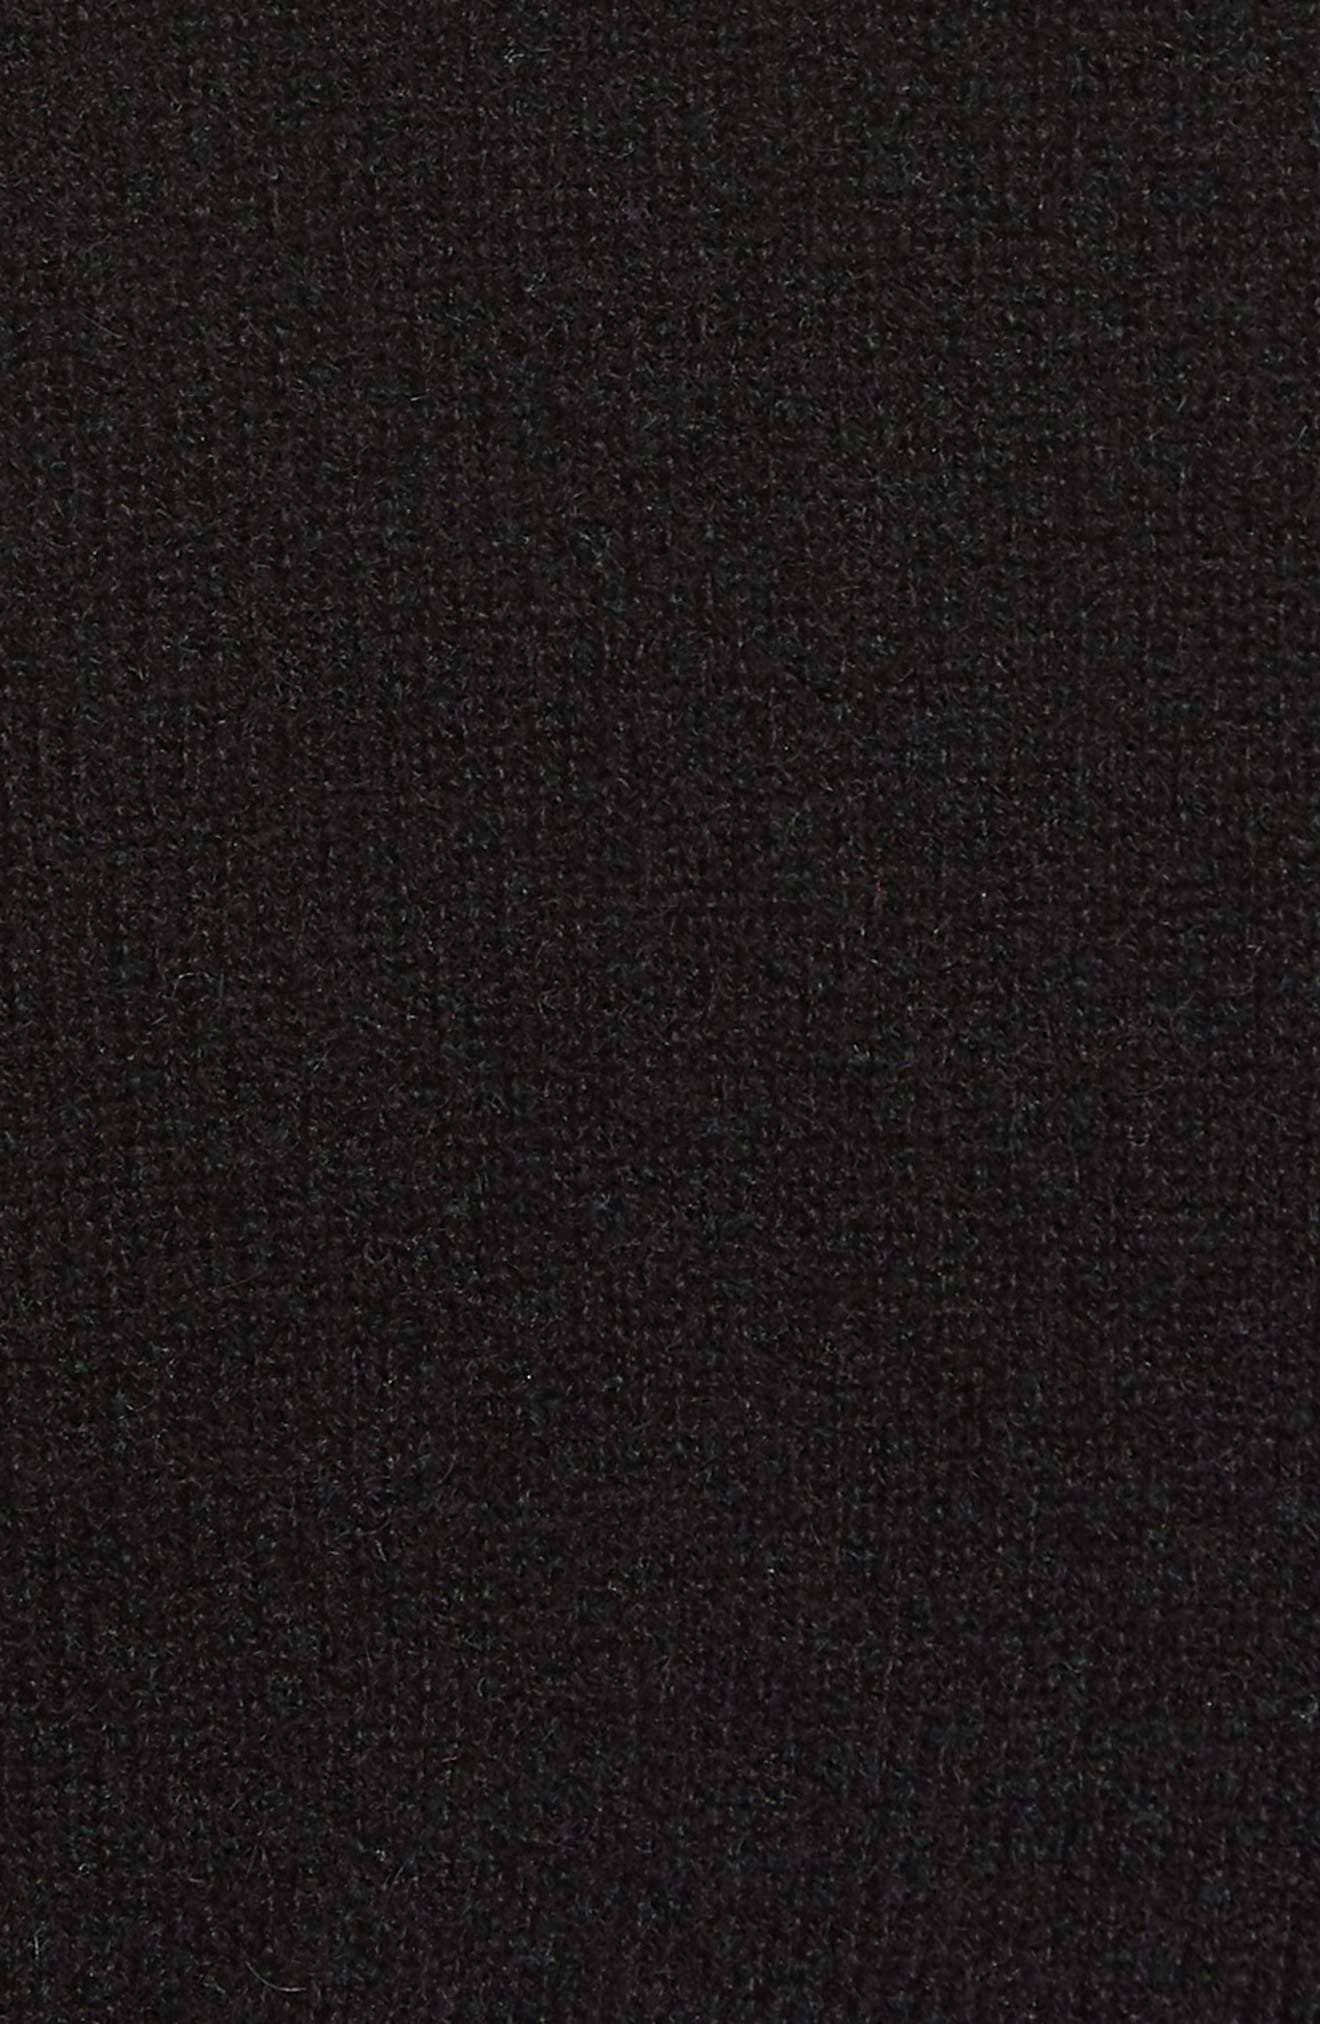 Cashmere Slim Pullover,                             Alternate thumbnail 5, color,                             001